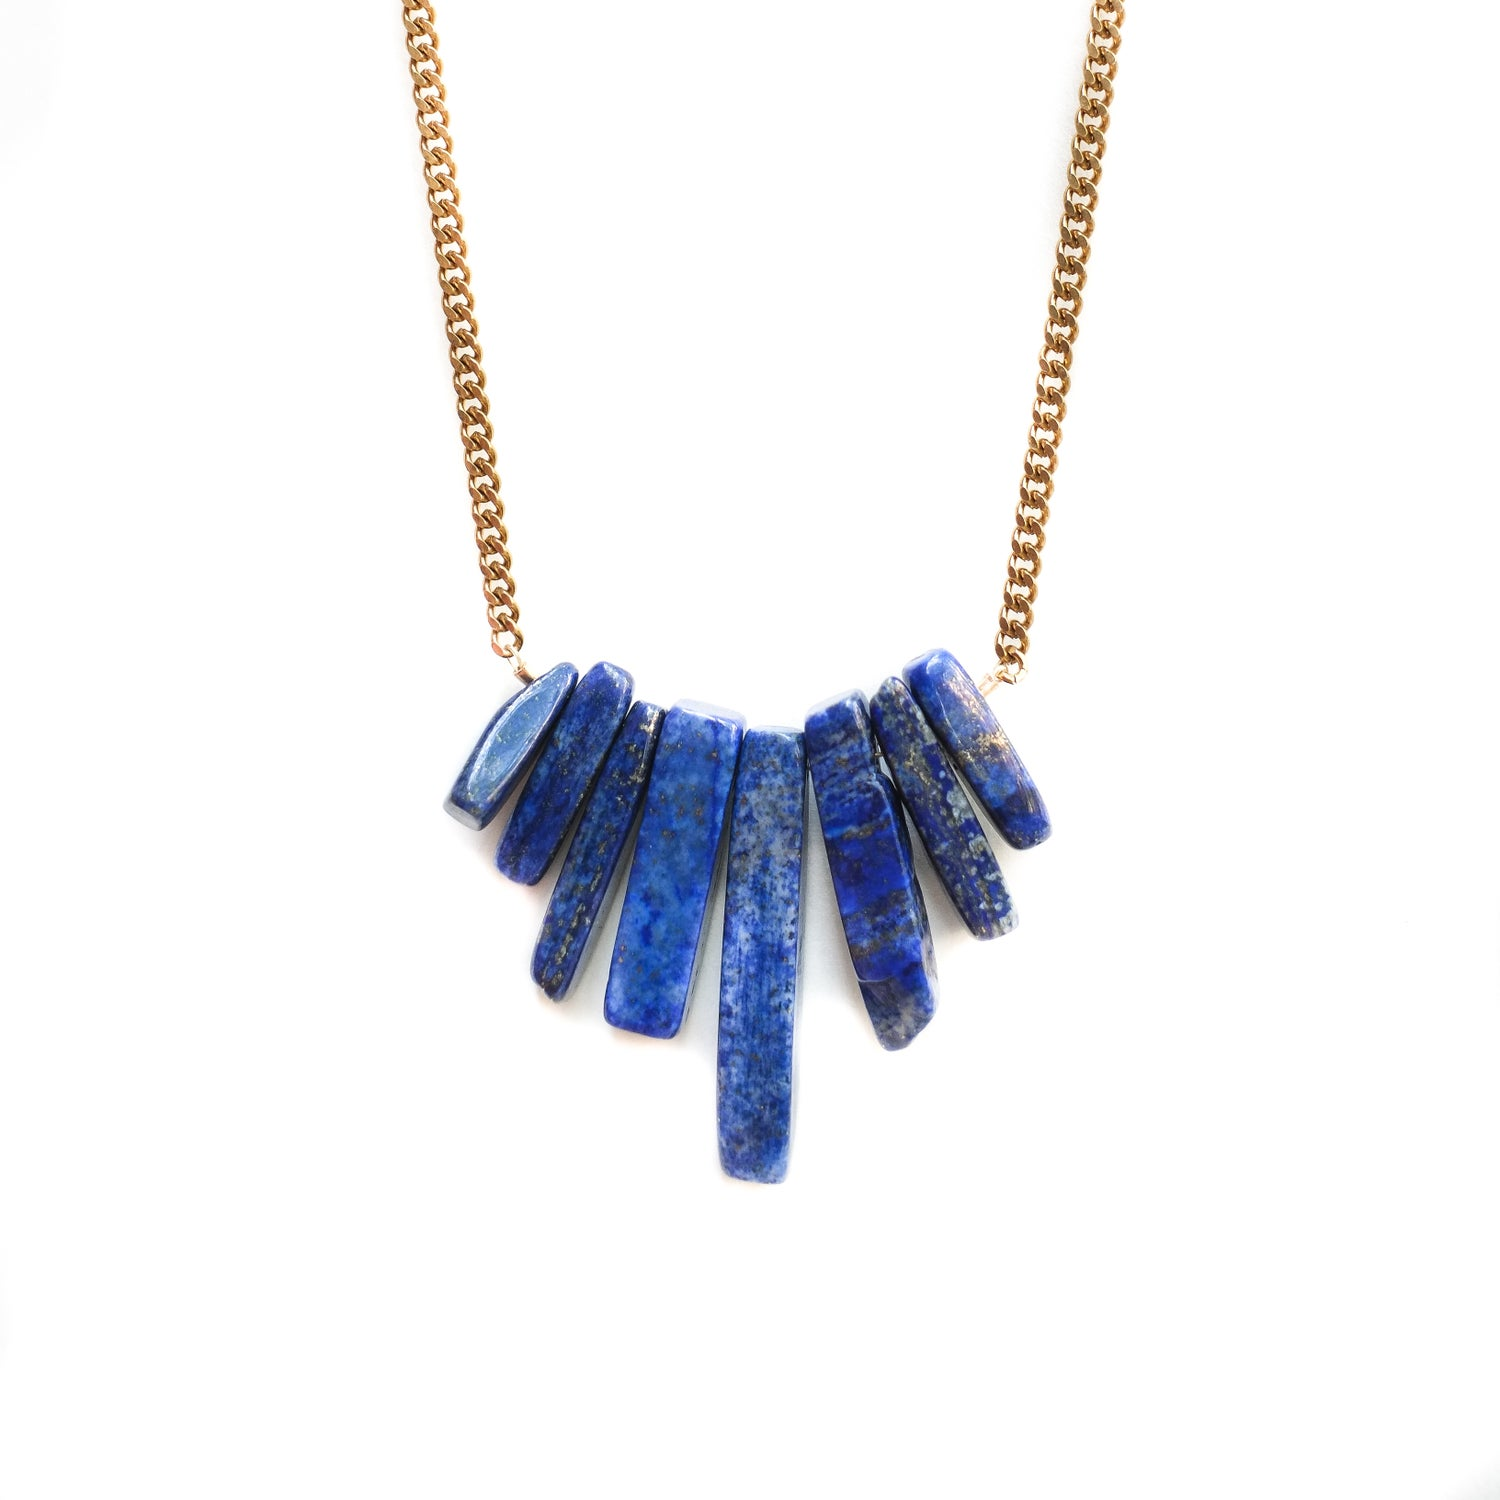 Image of Blue Nile Necklace